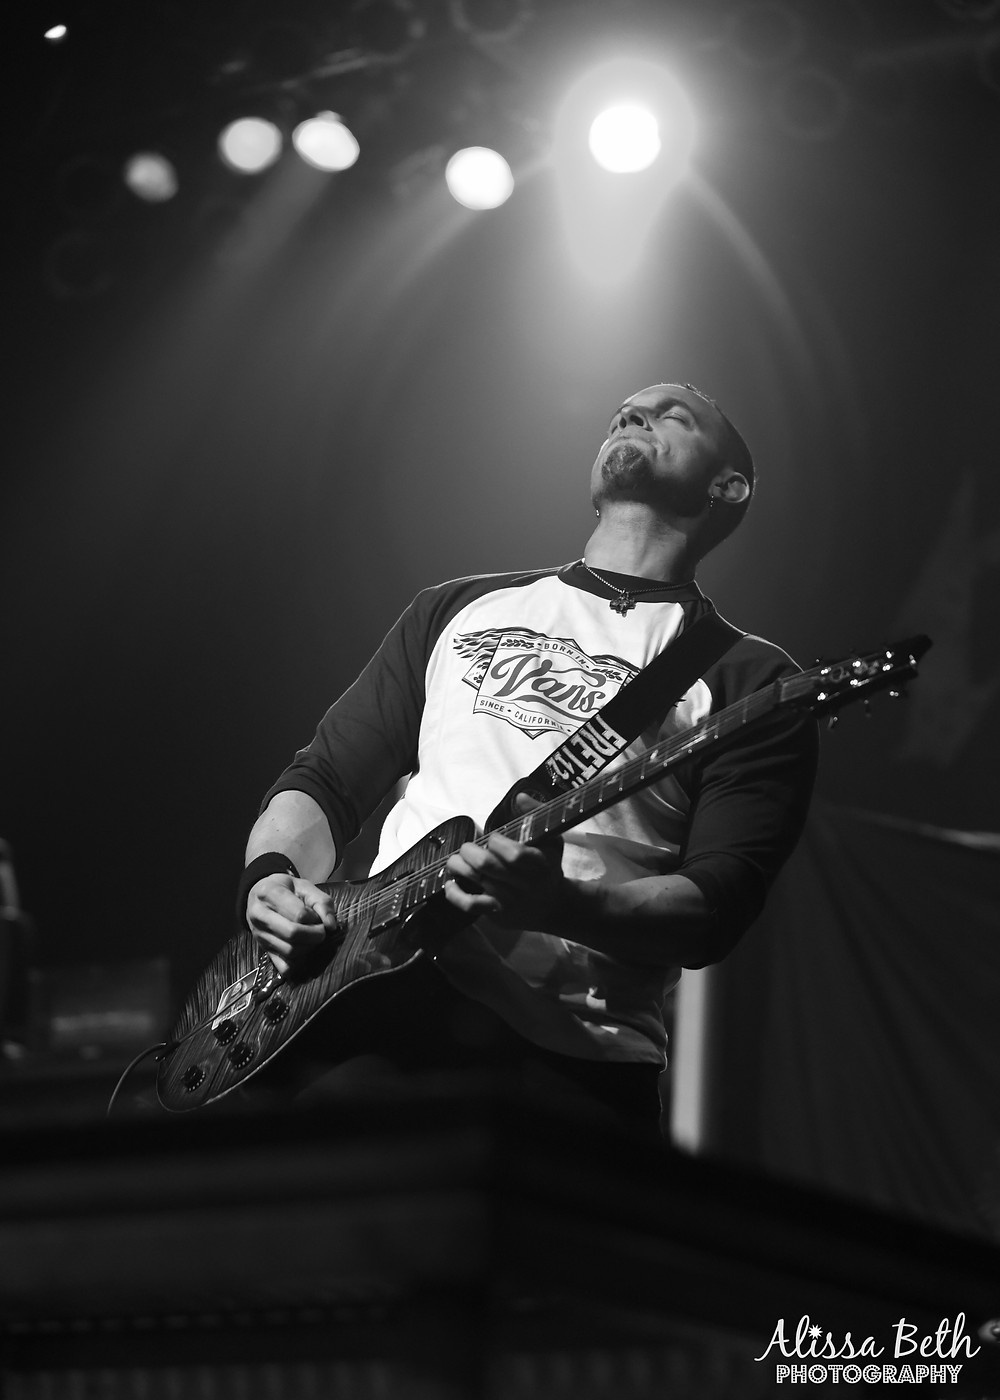 Mark Tremonti of Creed and Alterbridge